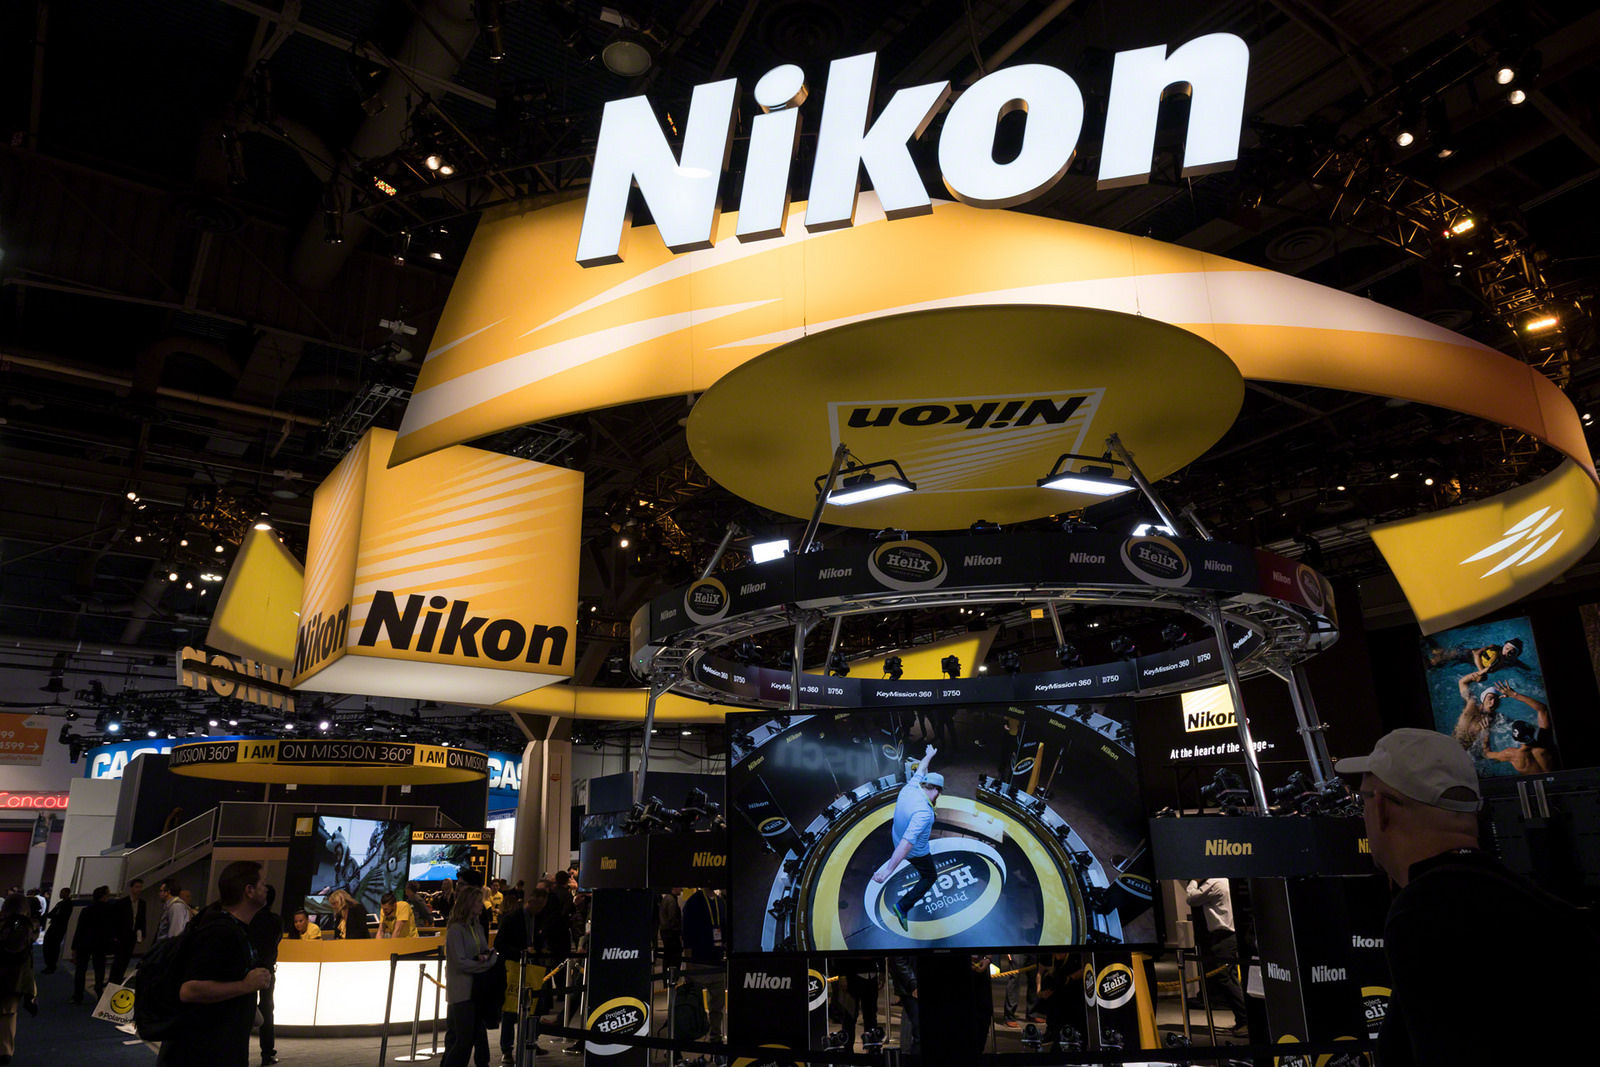 Nikon, ASML and Carl Zeiss to settle all litigations, Nikon is getting paid €150 million